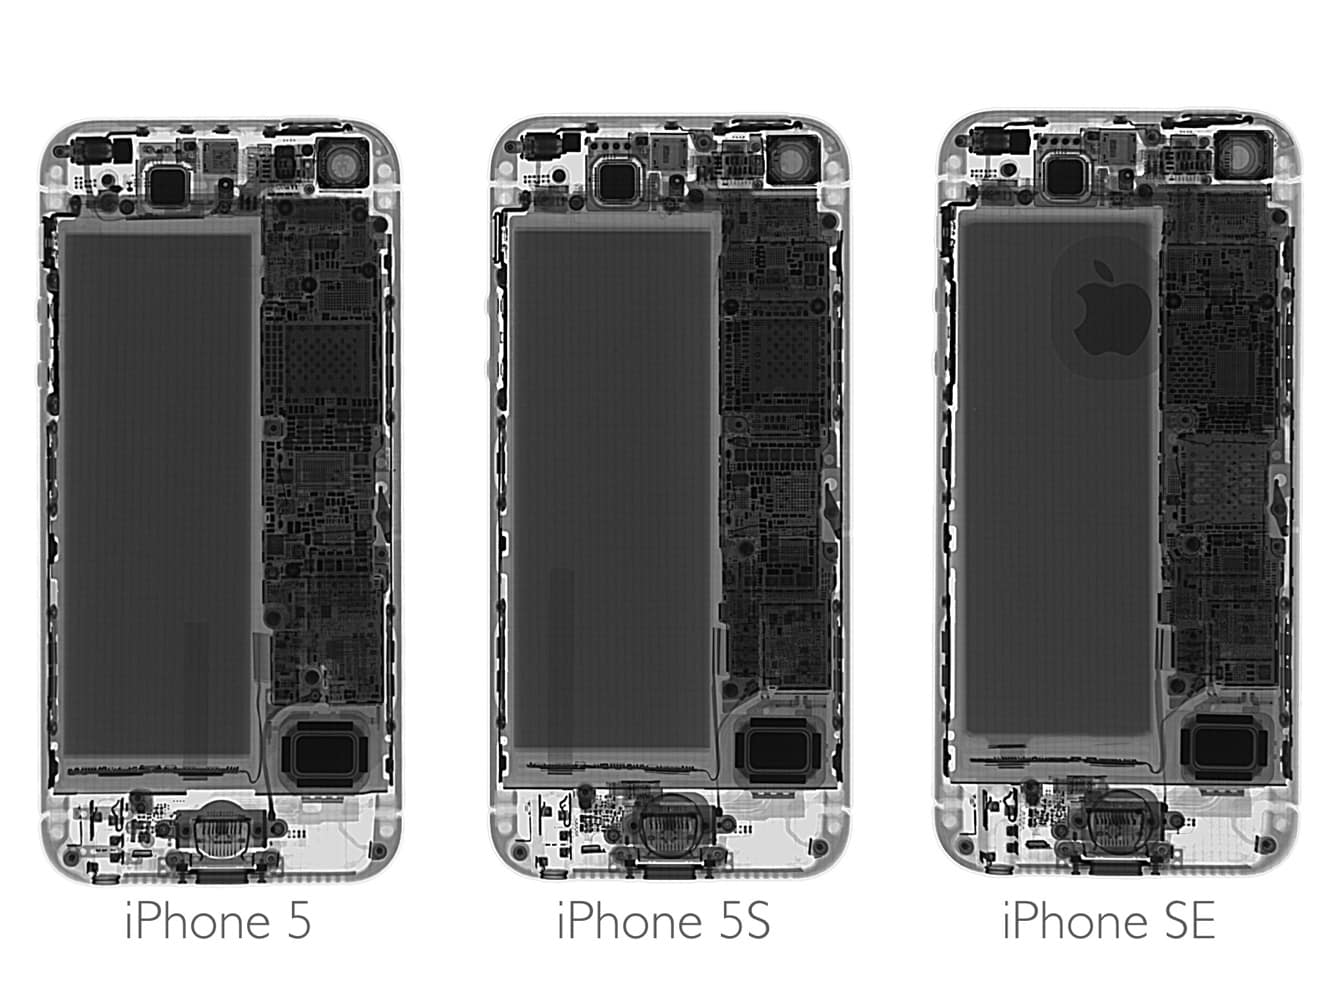 iFixit's iPhone SE Teardown reveals some interchangeability with iPhone 5s parts